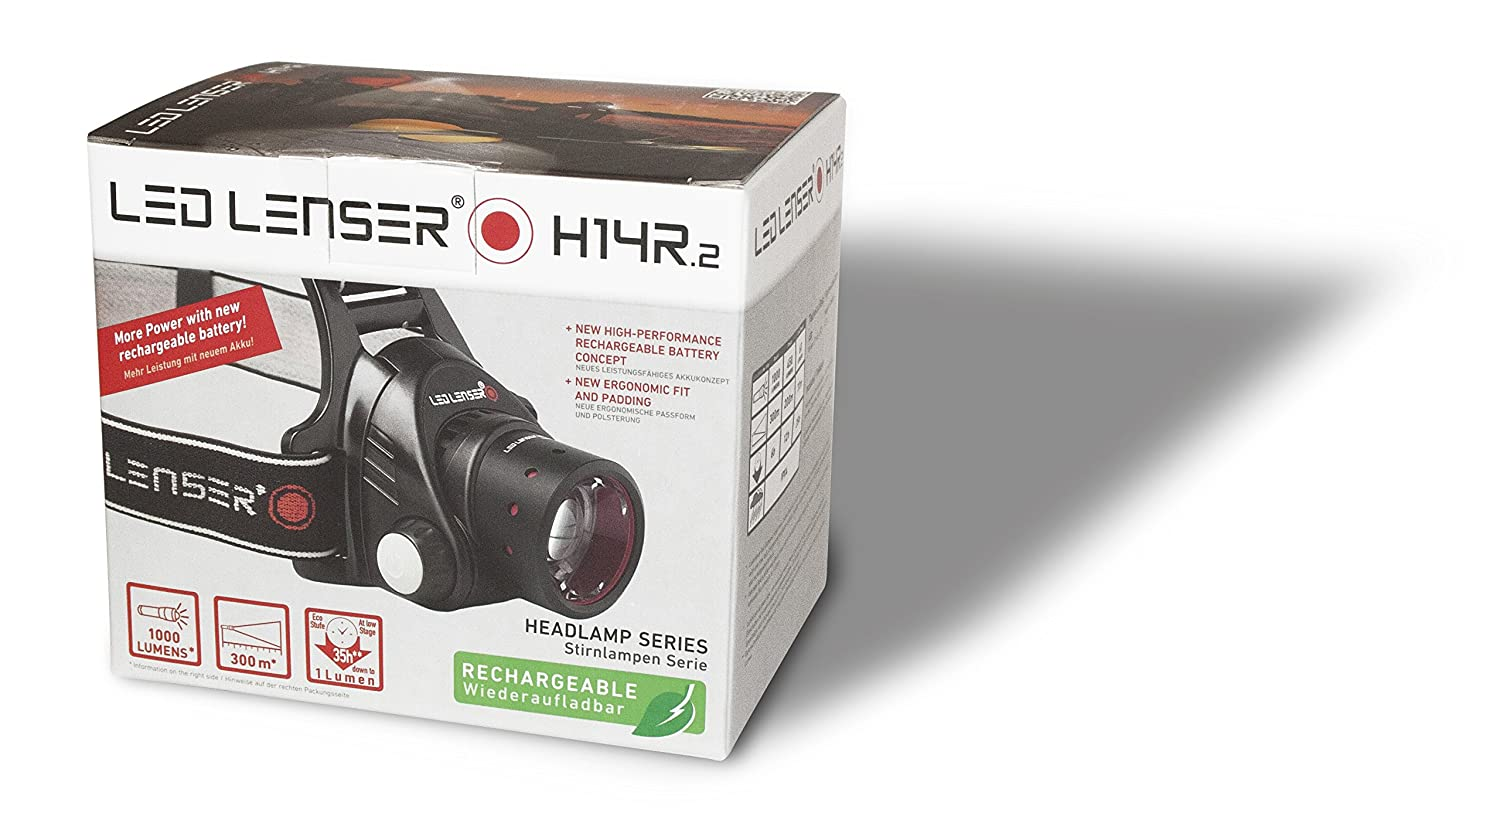 Camping-Lampen & -Laternen Clamshell Packaging LEDLENSER H14R.2 Rechargeable Headlamp Helmlampe